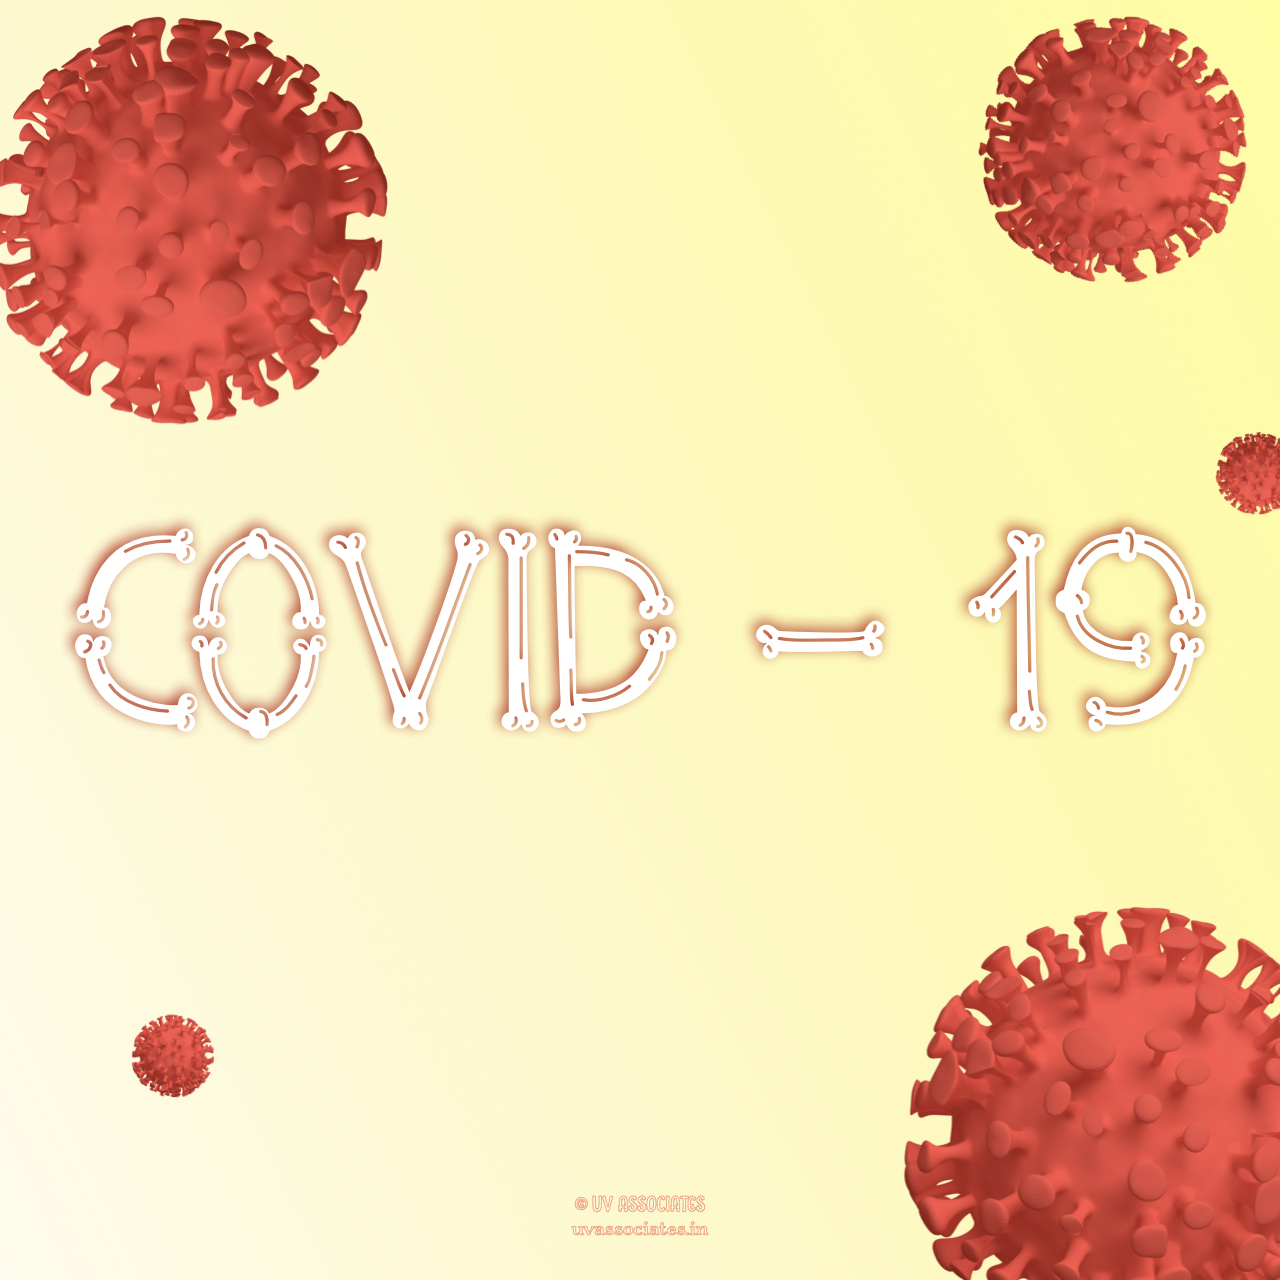 Red Coronavirus cells with stylized text on Yellow Background